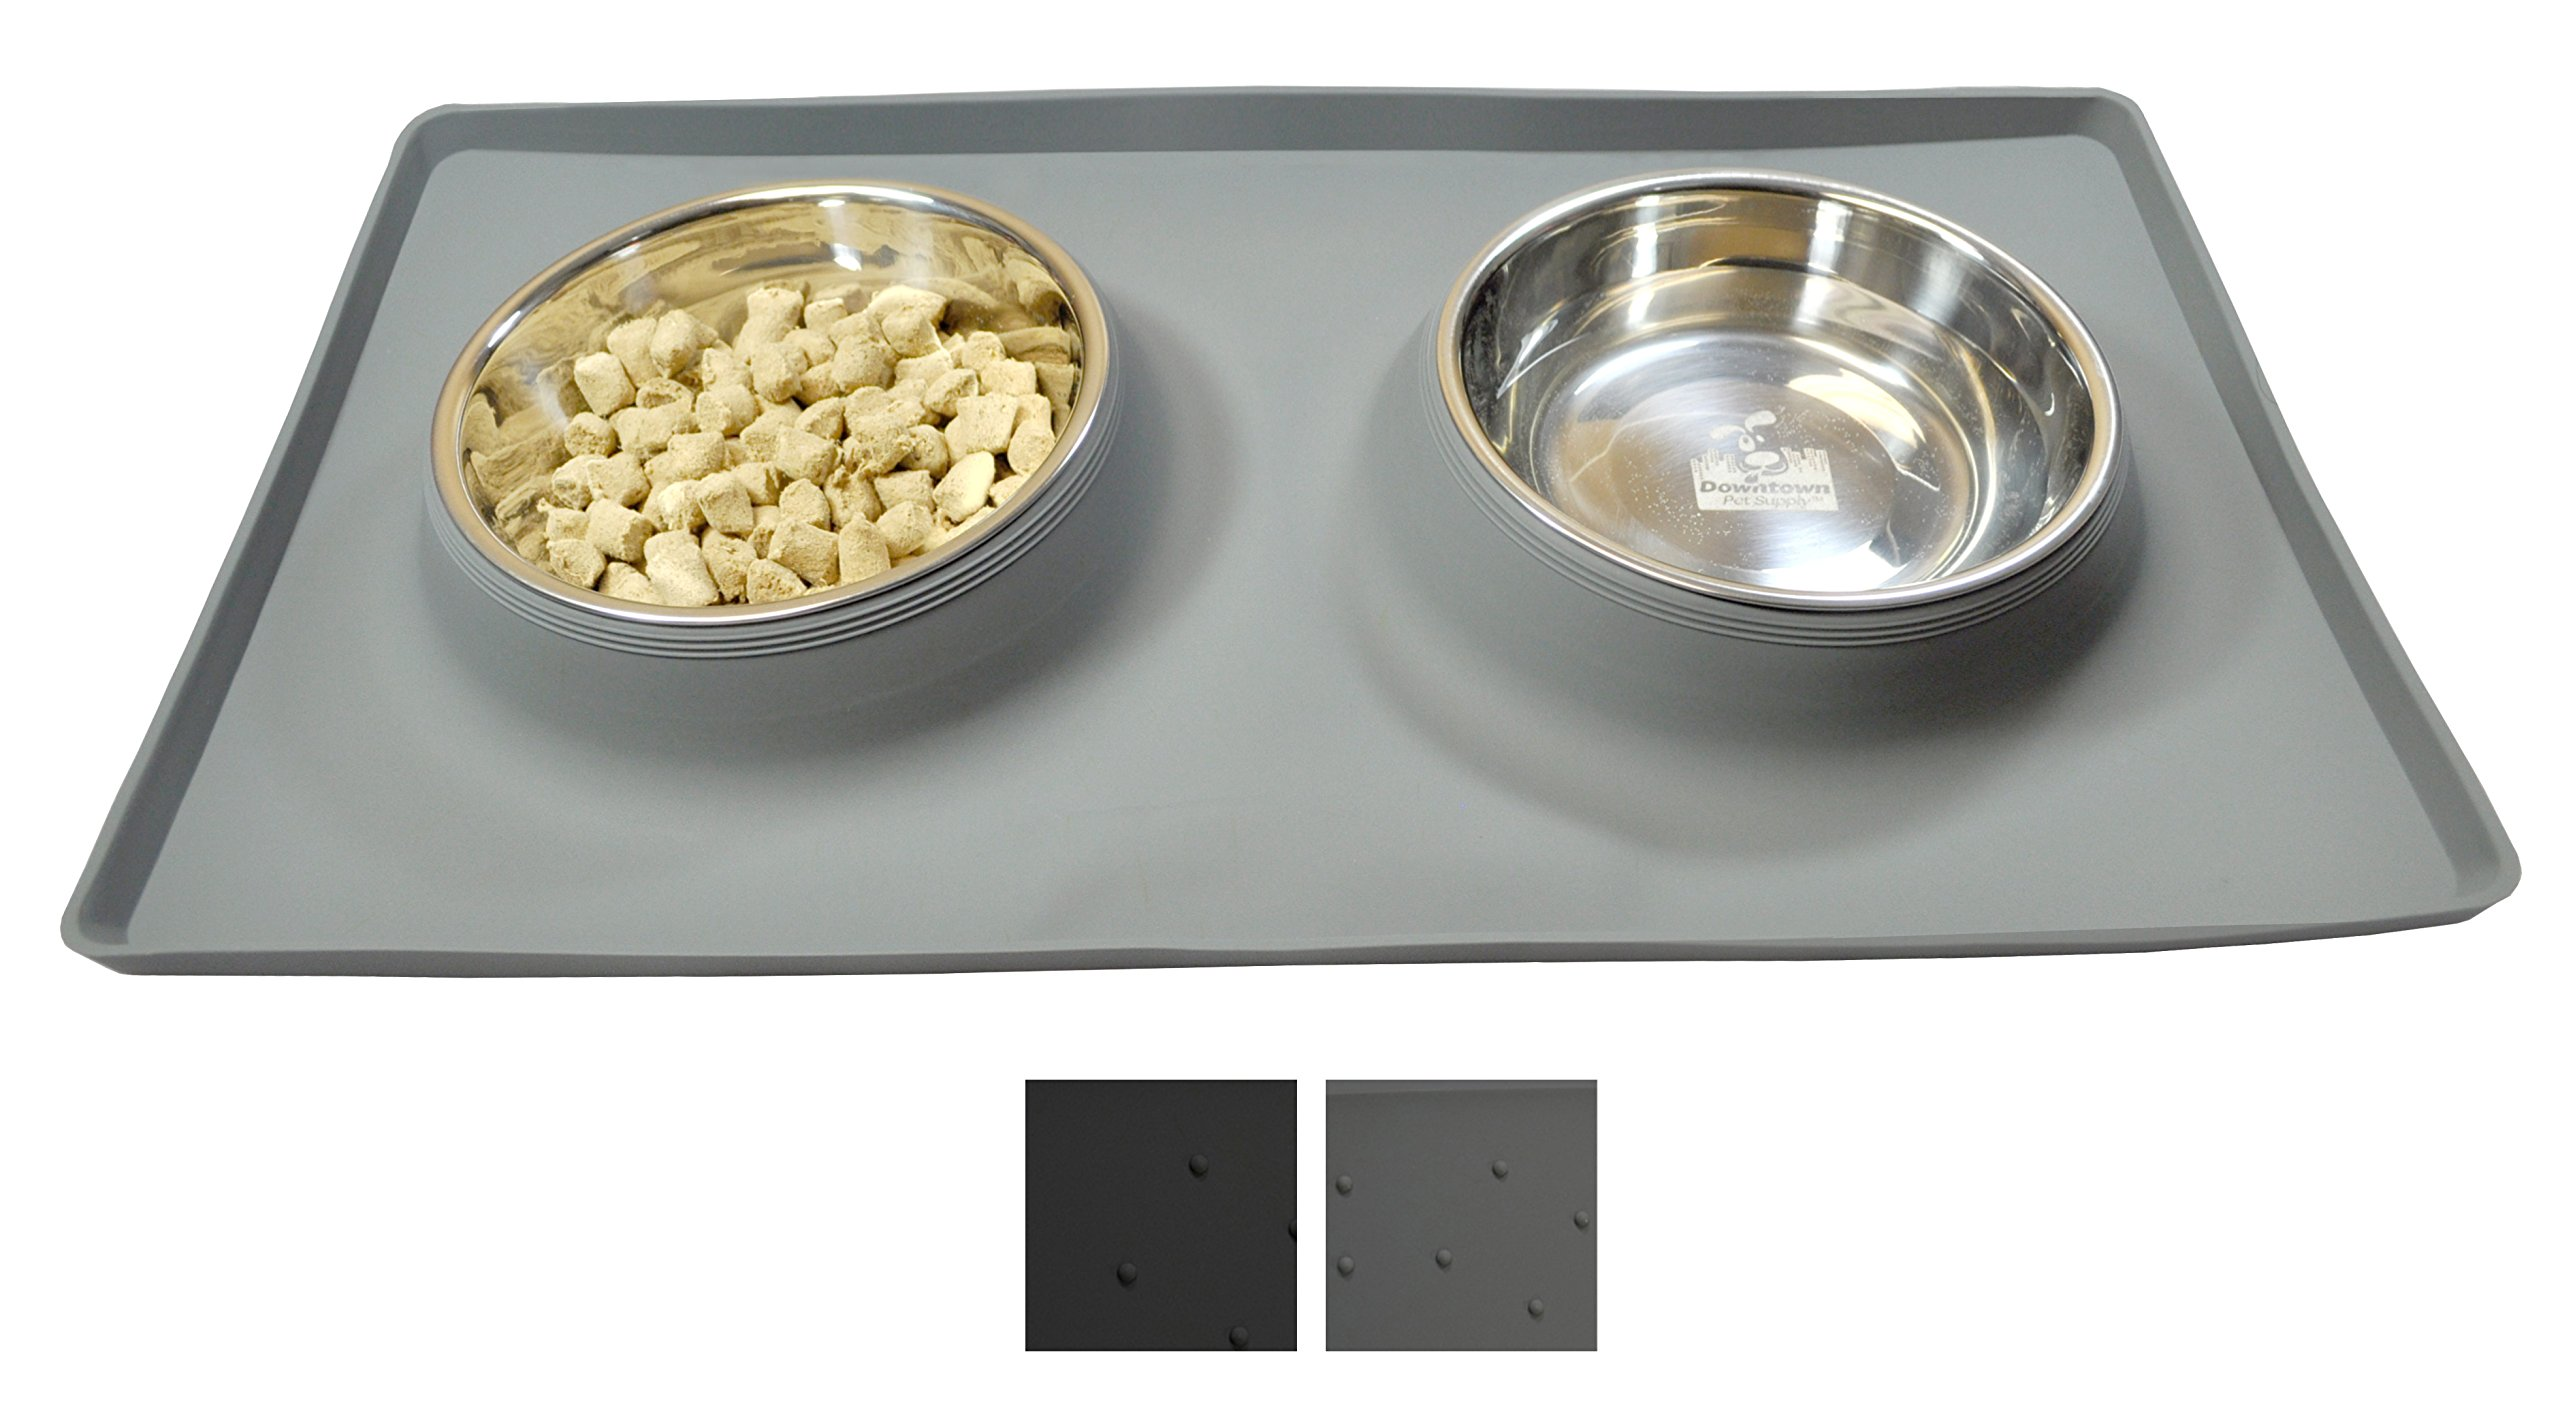 Downtown Pet Supply NO SPILL Dog Cat Food & Water Bowl, includes Custom Silicone Feeding Station Mat and Two Dog Bowls, Gray, 24 oz